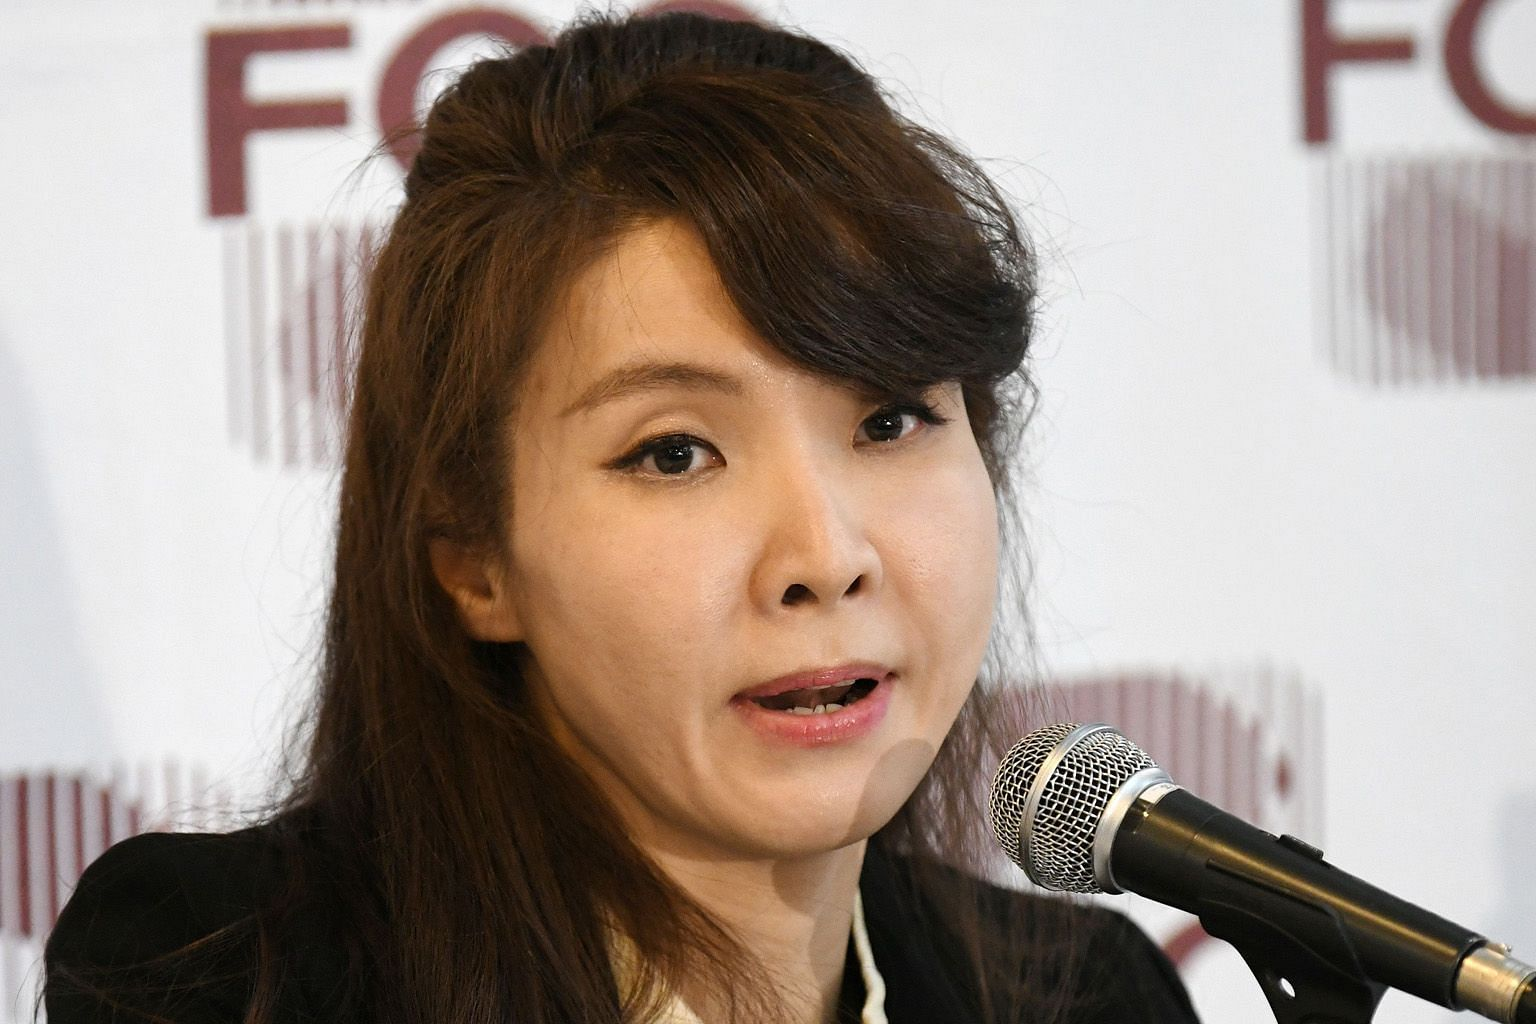 South Korean prosecutor Seo Ji-hyun speaking at a press conference with foreign correspondents in Seoul on Friday. PHOTO: AGENCE FRANCE-PRESSE